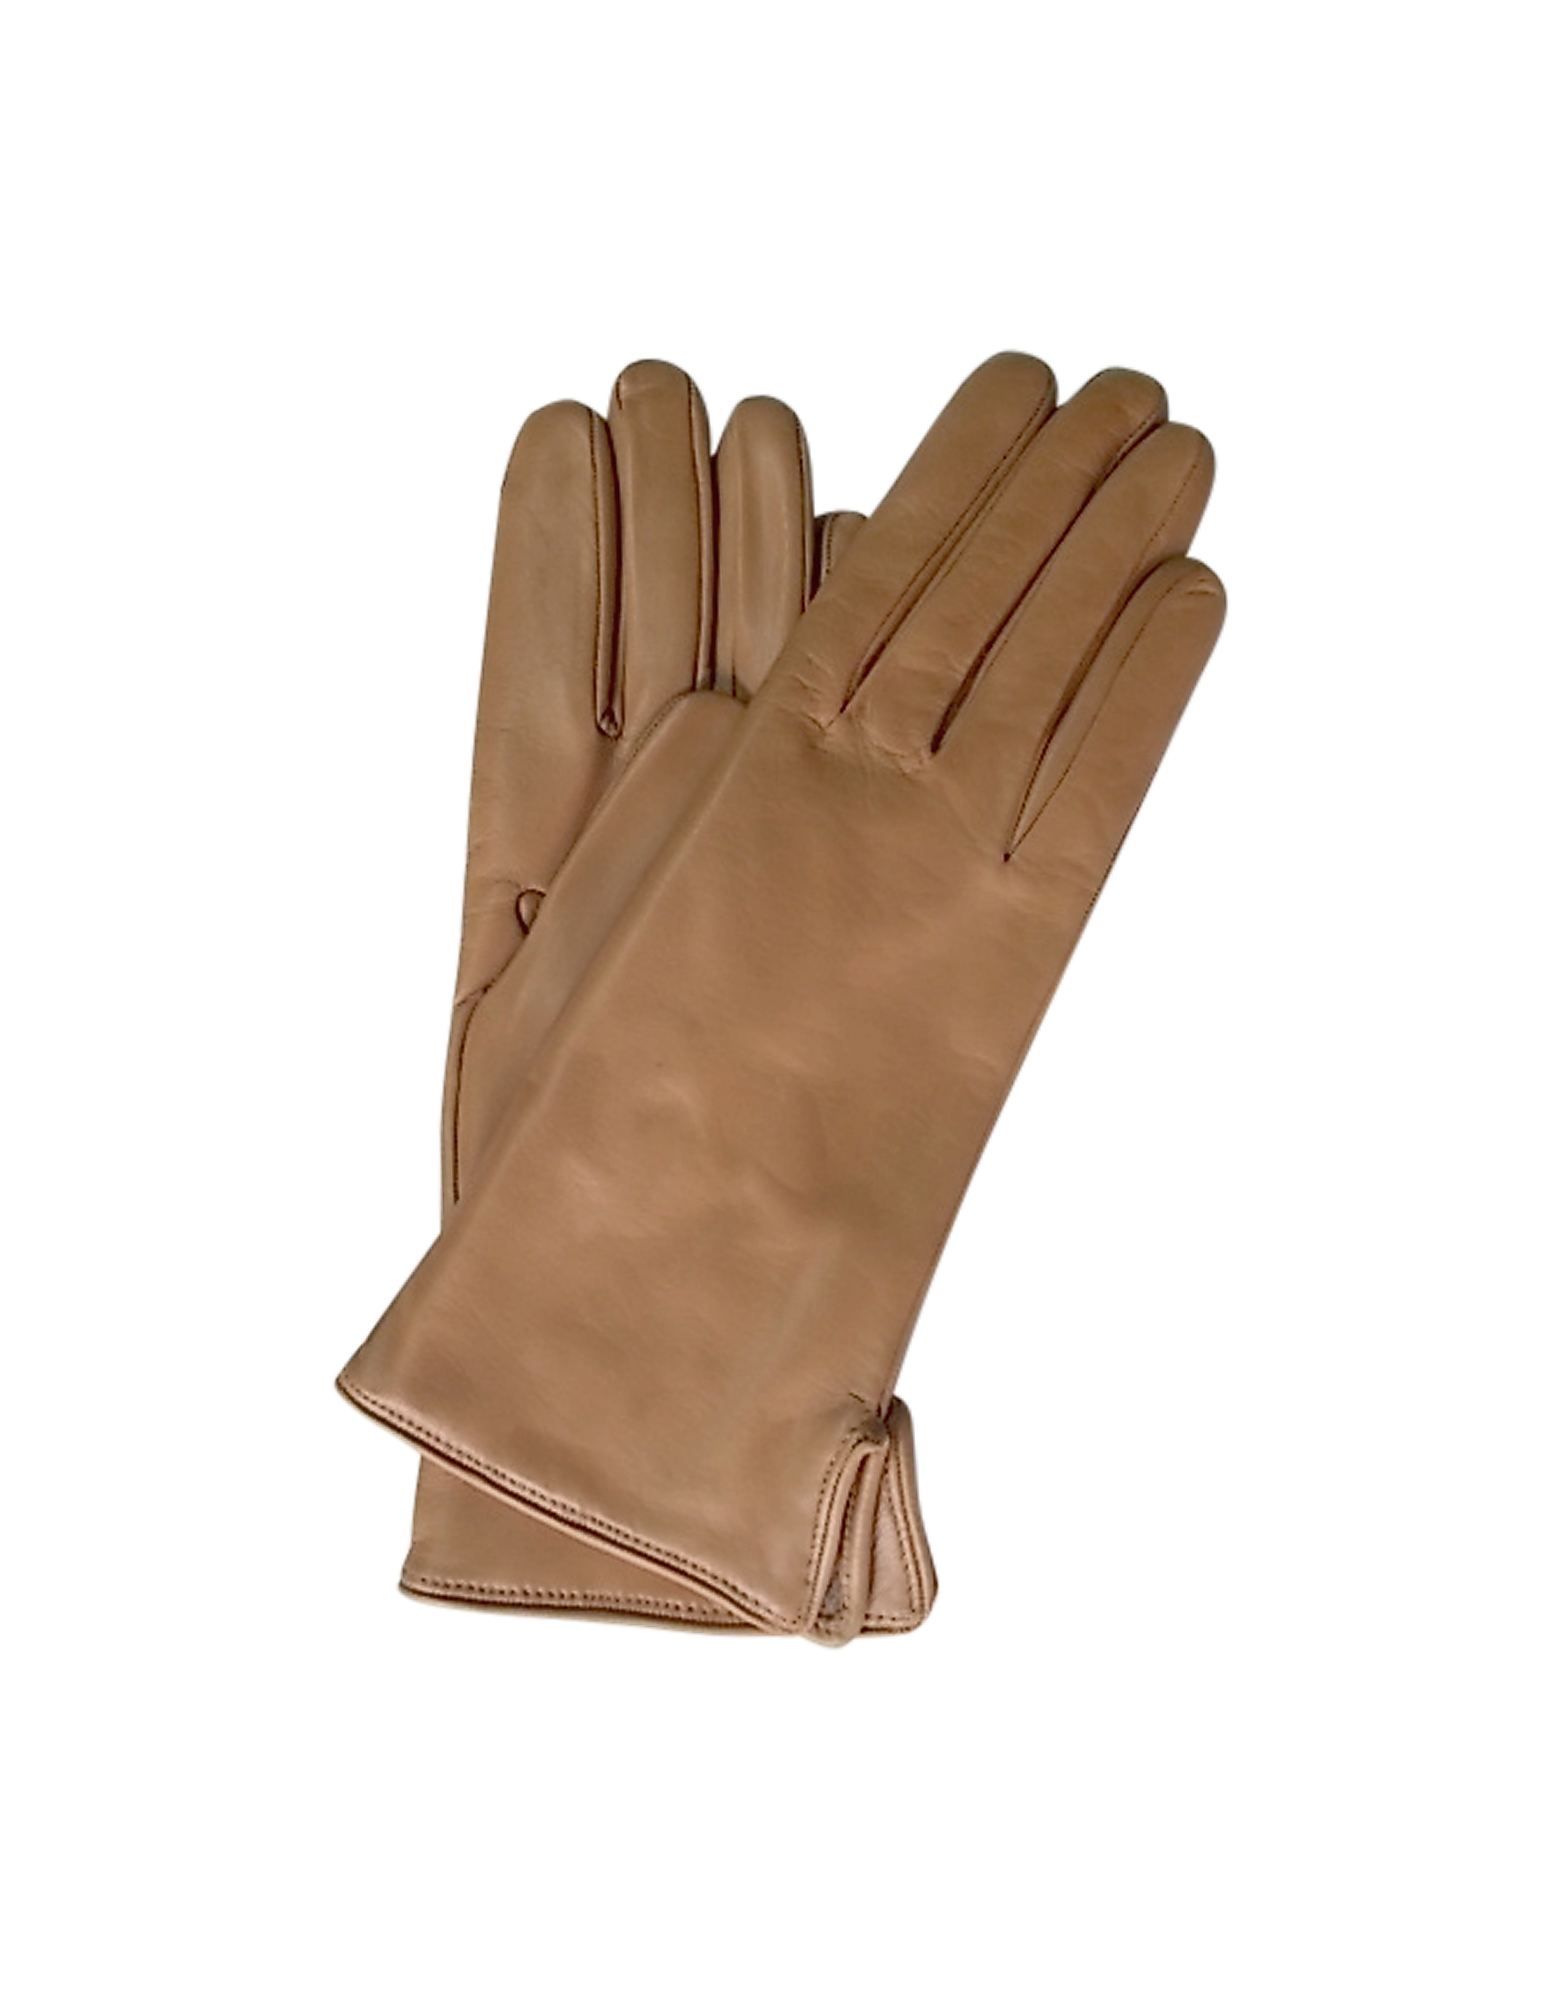 Forzieri 福喜利 女士手套, Camel Leather Women's Gloves w/Cashmere Lining